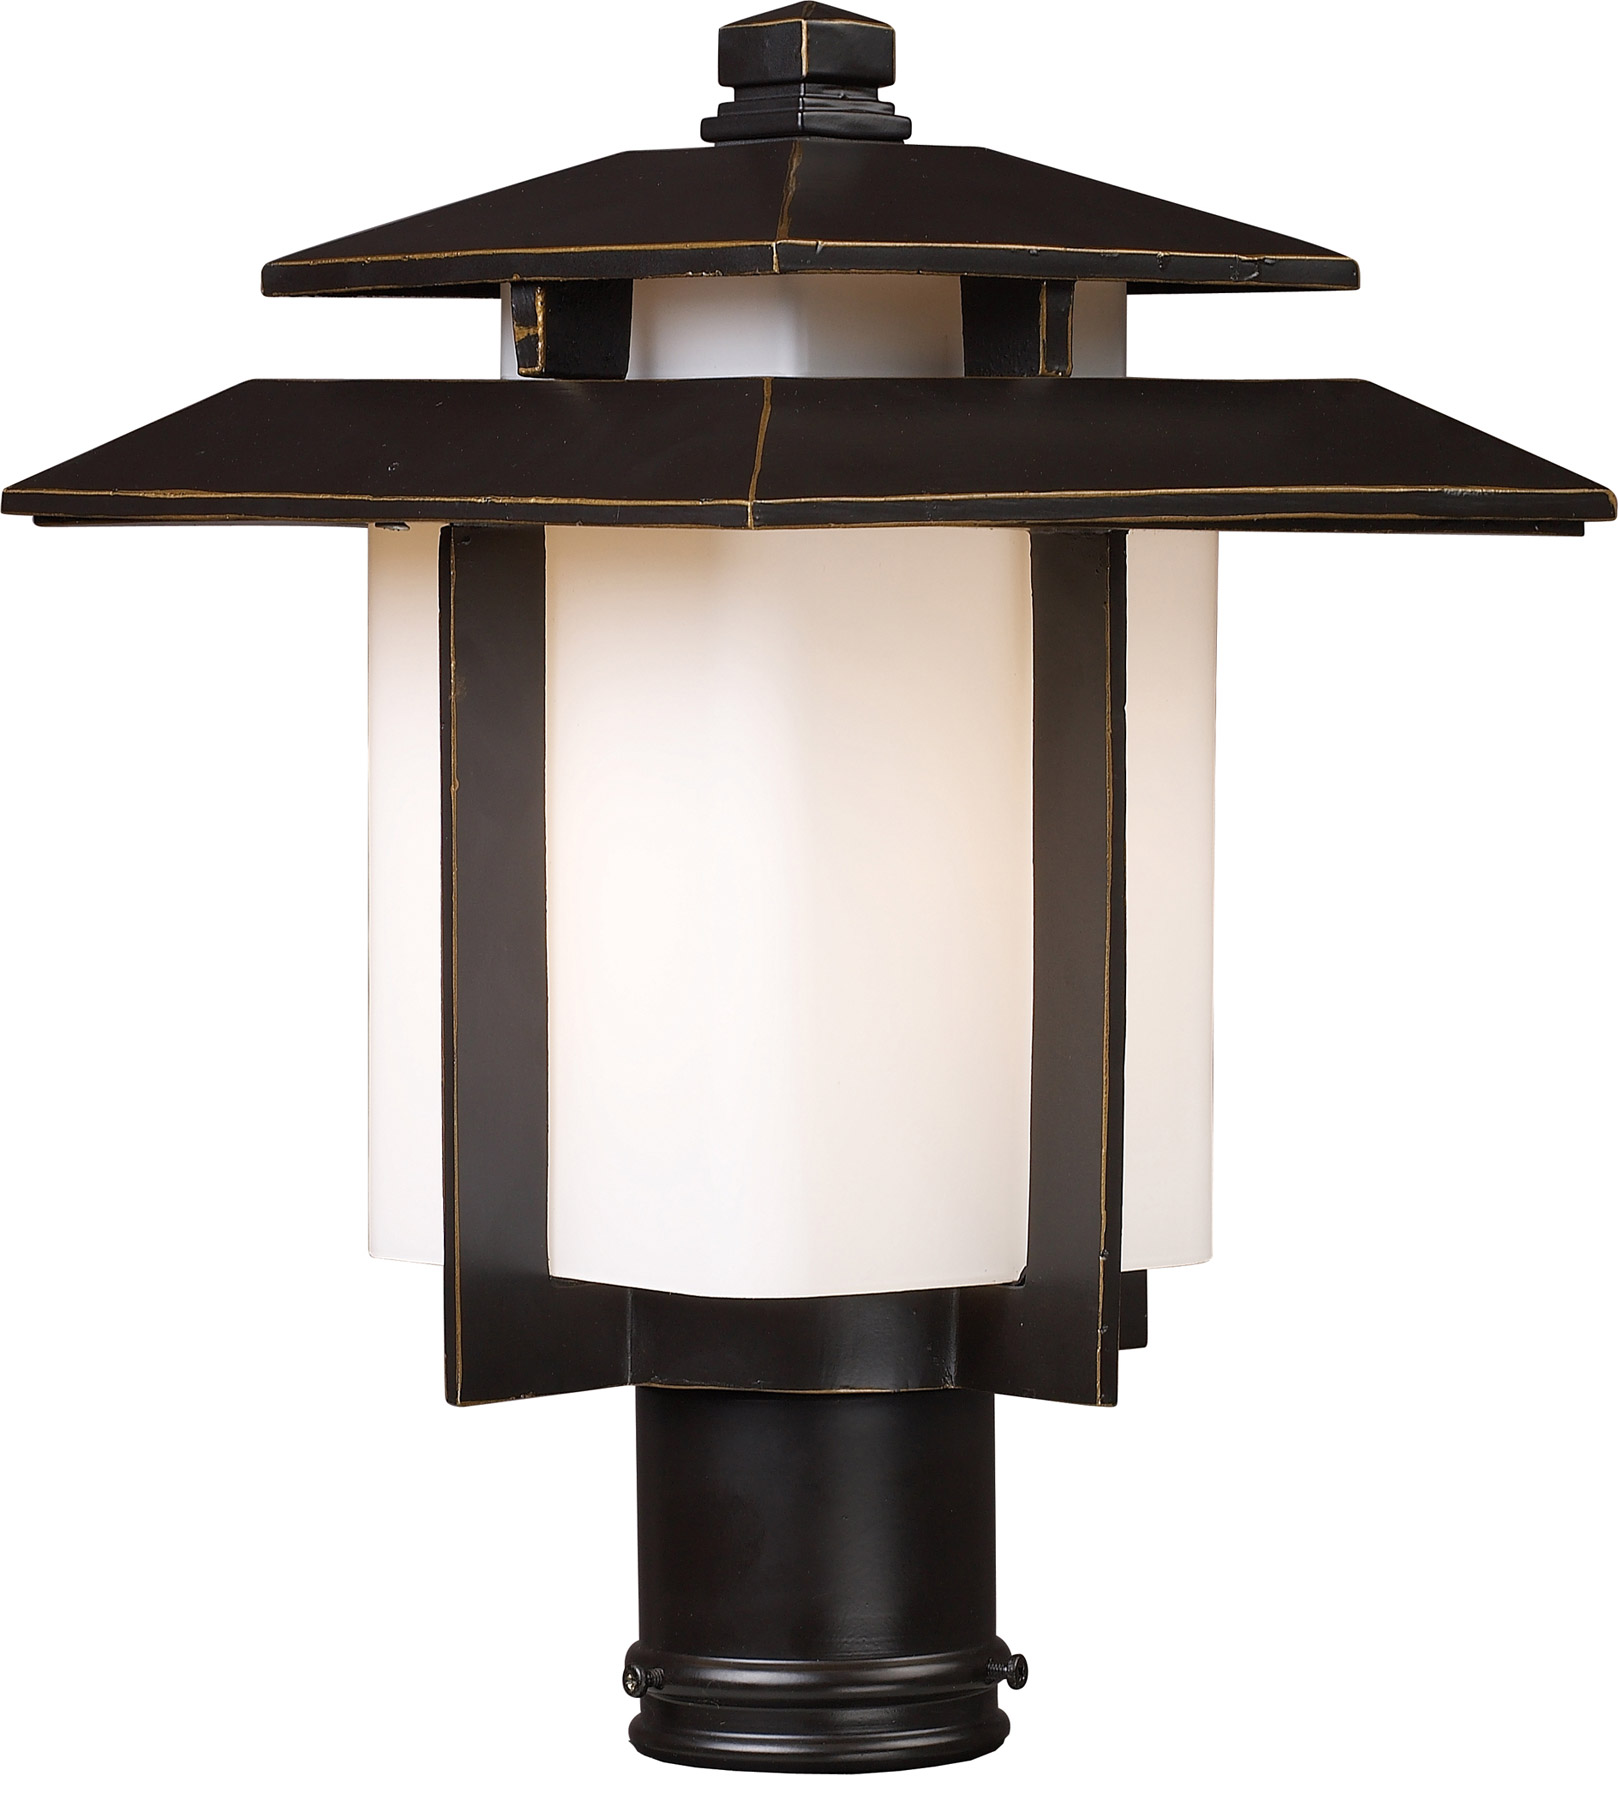 Column Mount Outdoor Lights U2013 Reasons To Install